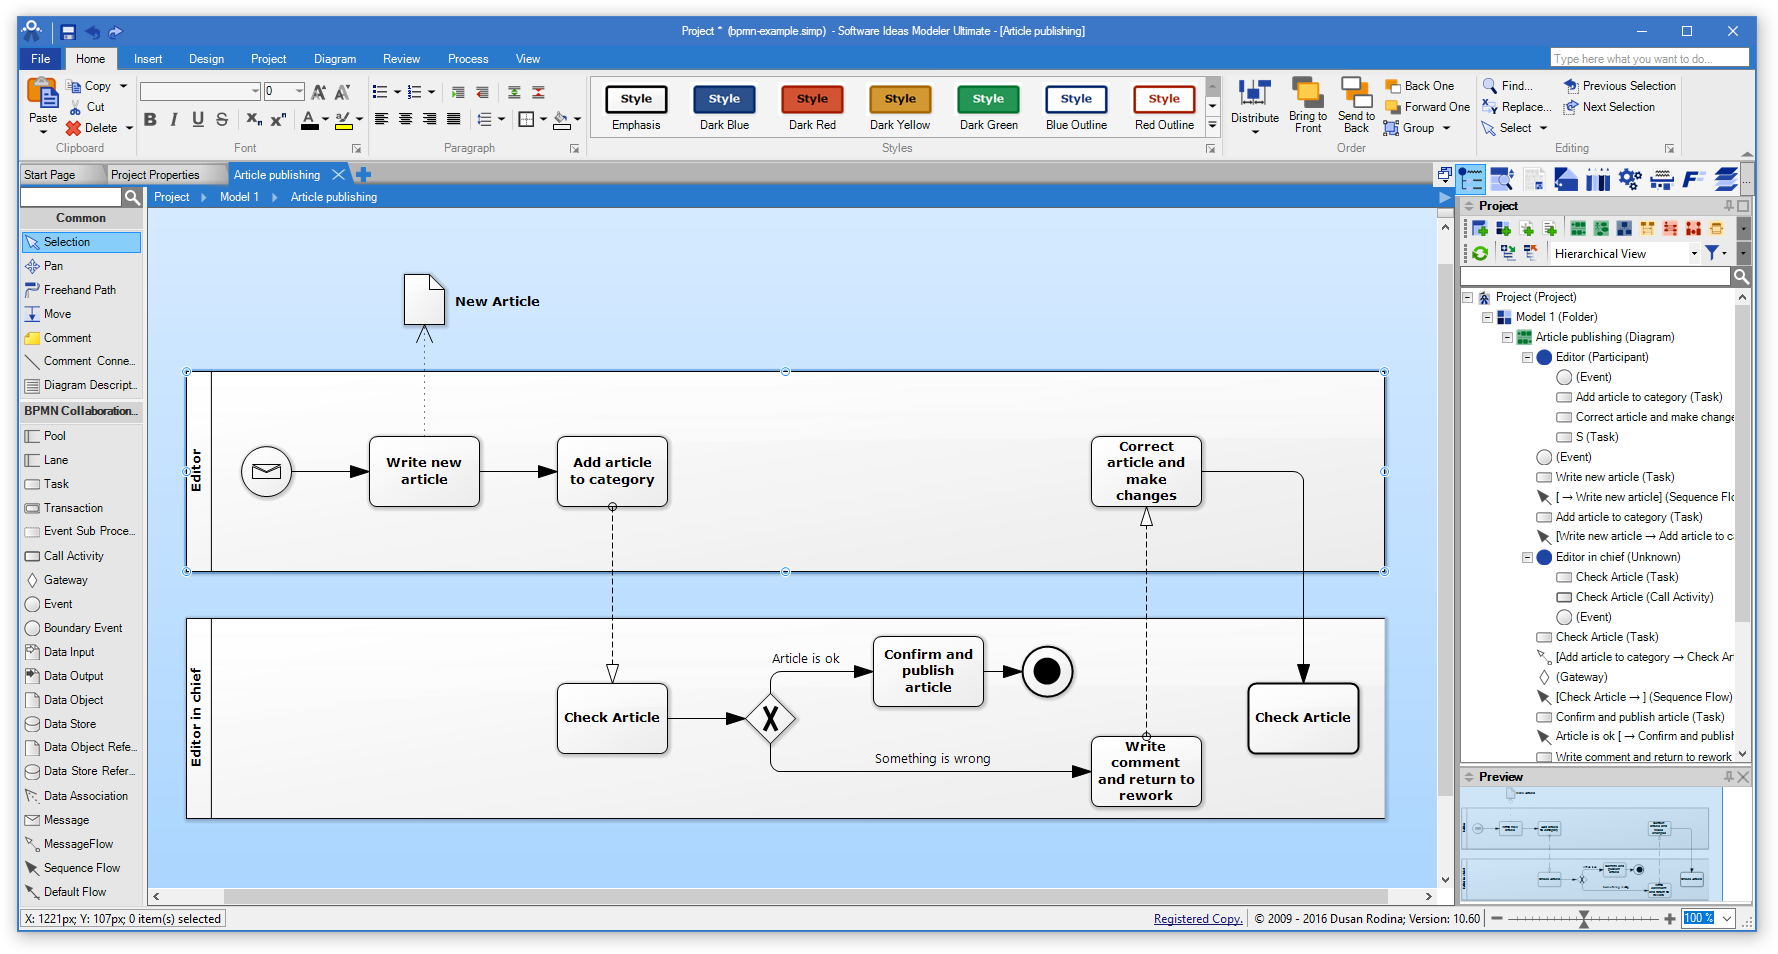 Software Ideas Modeler - Main Screen